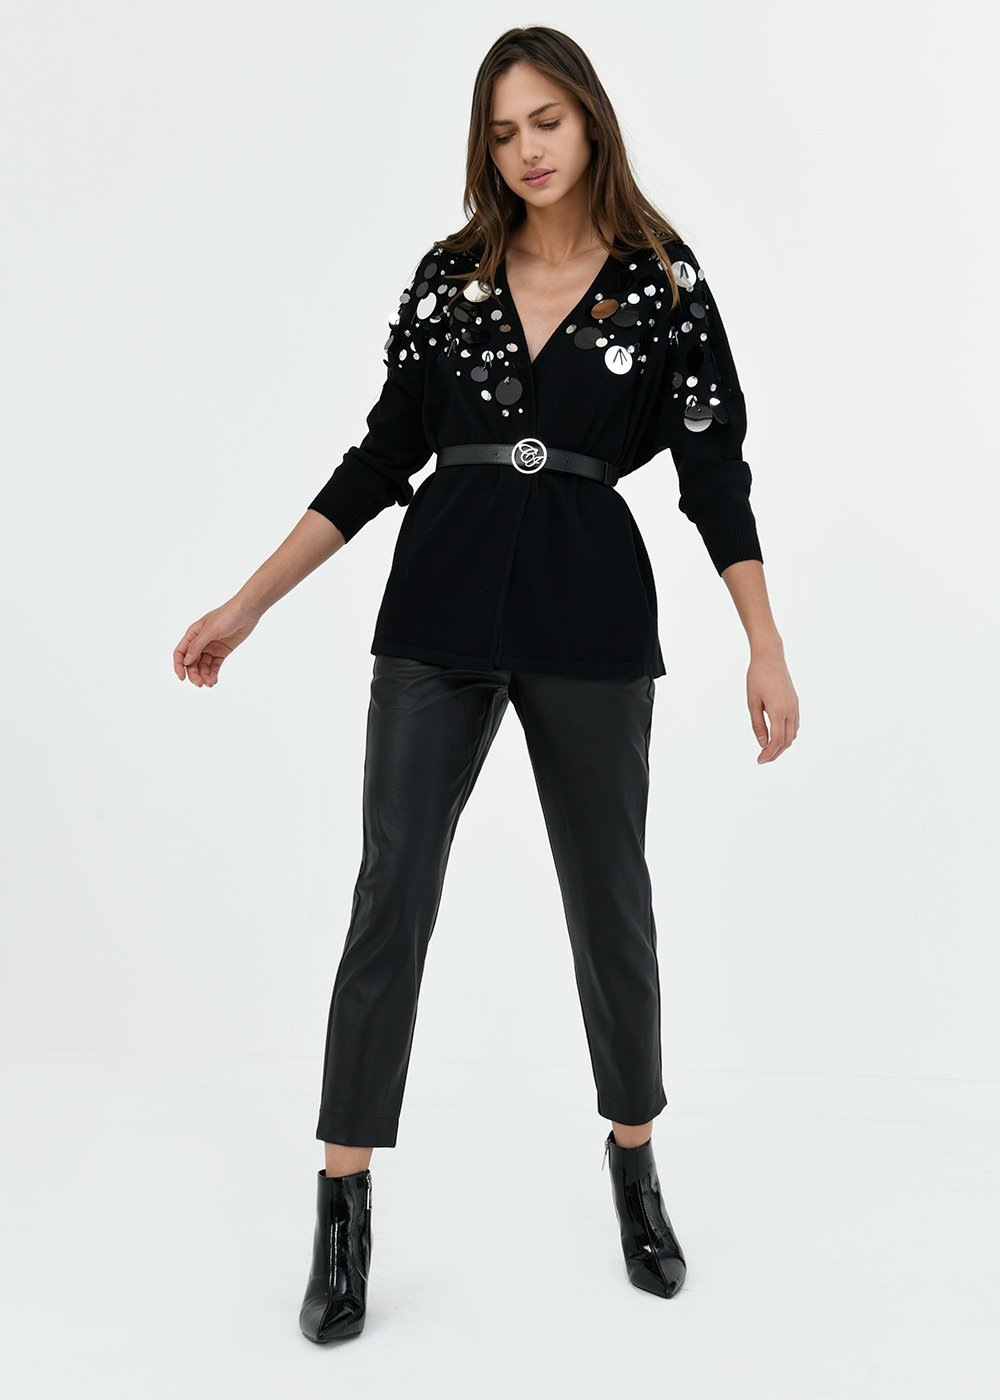 Cassy cardigan with maxi sequins - Black - Woman